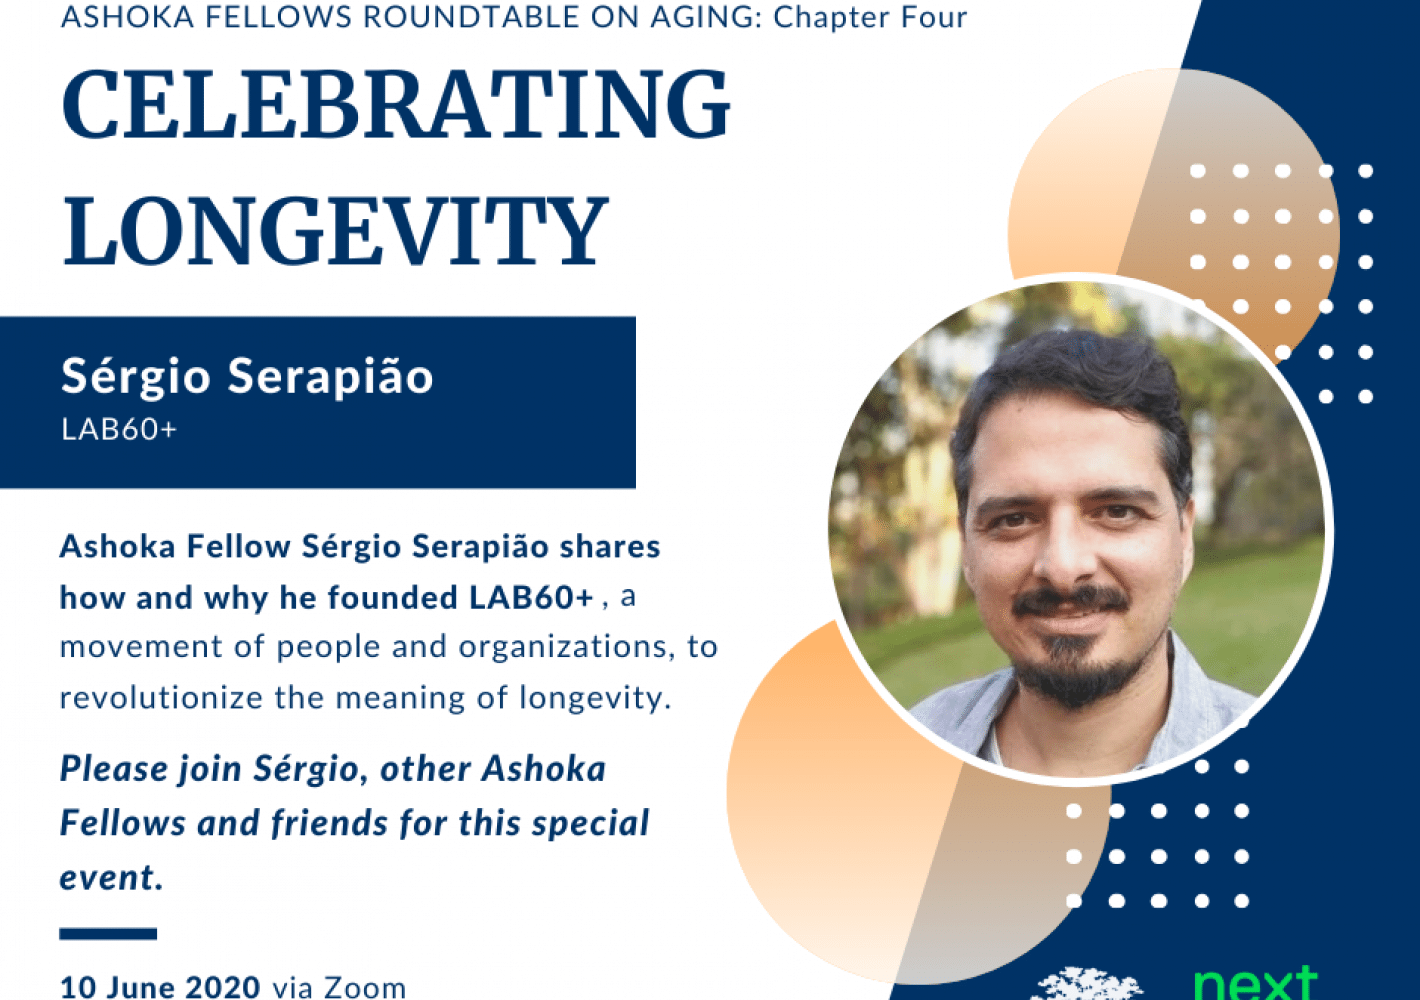 Sérgio Serapião: Celebrating Logevity